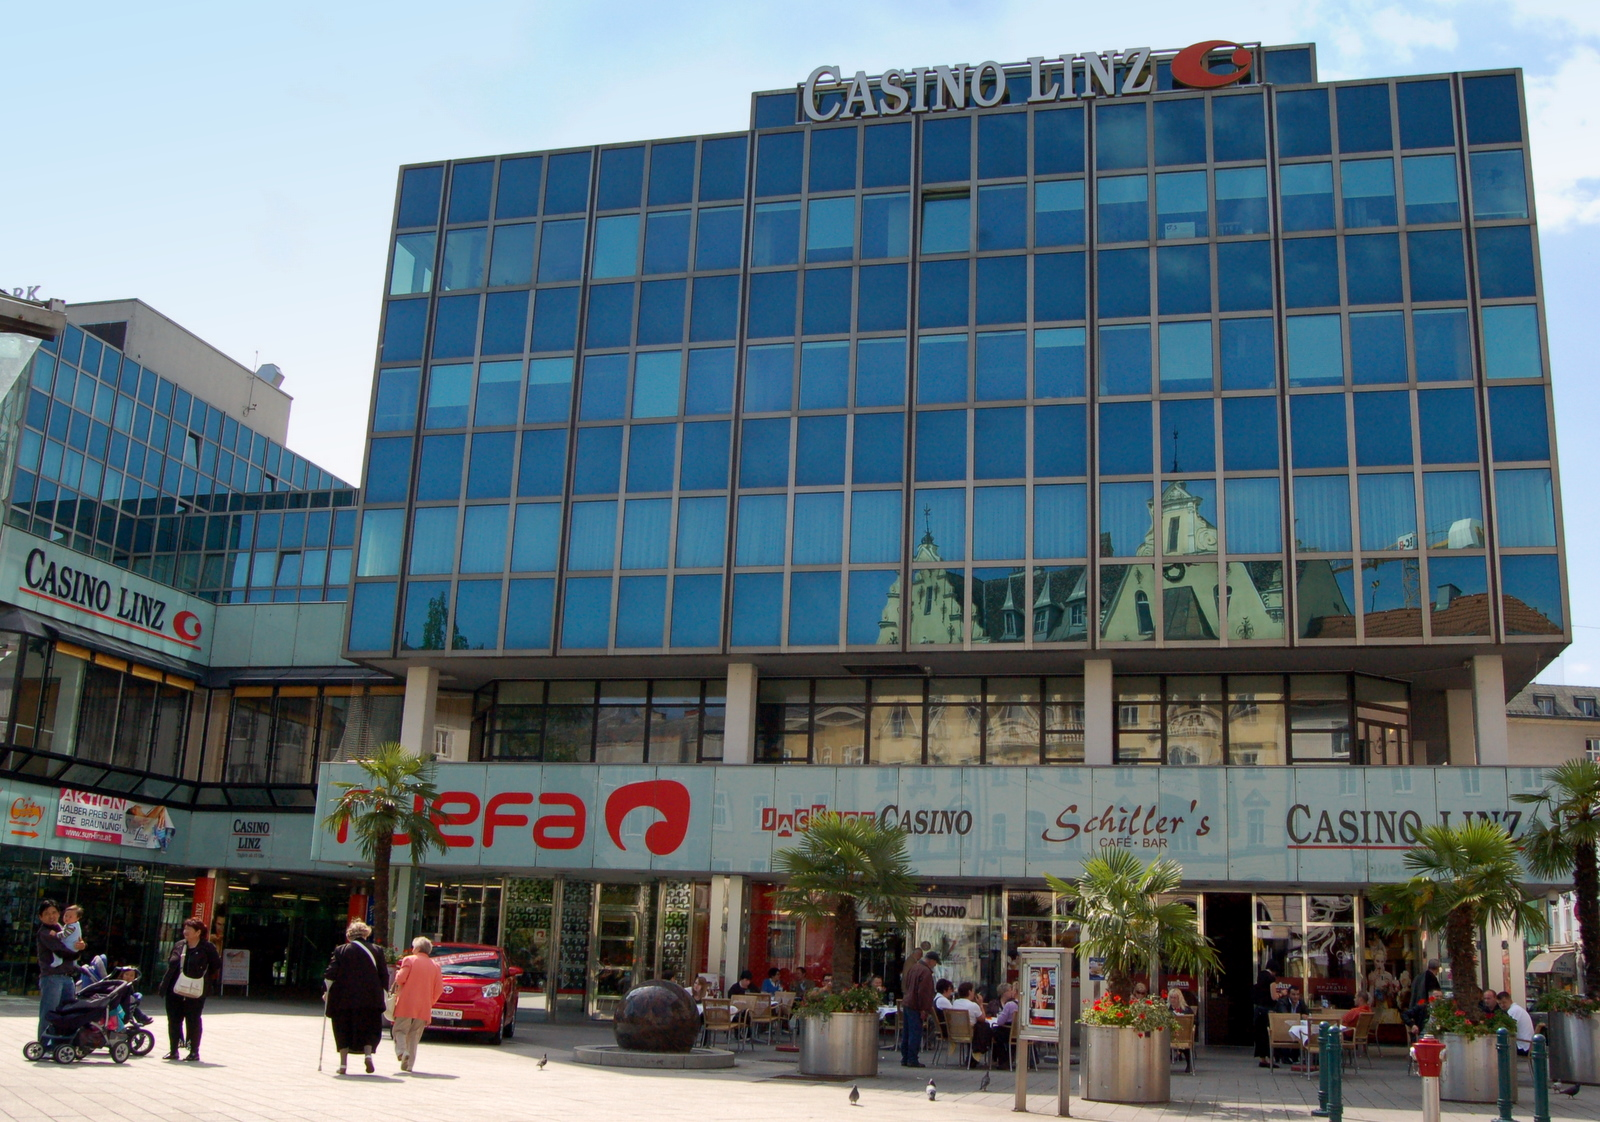 casino in linz